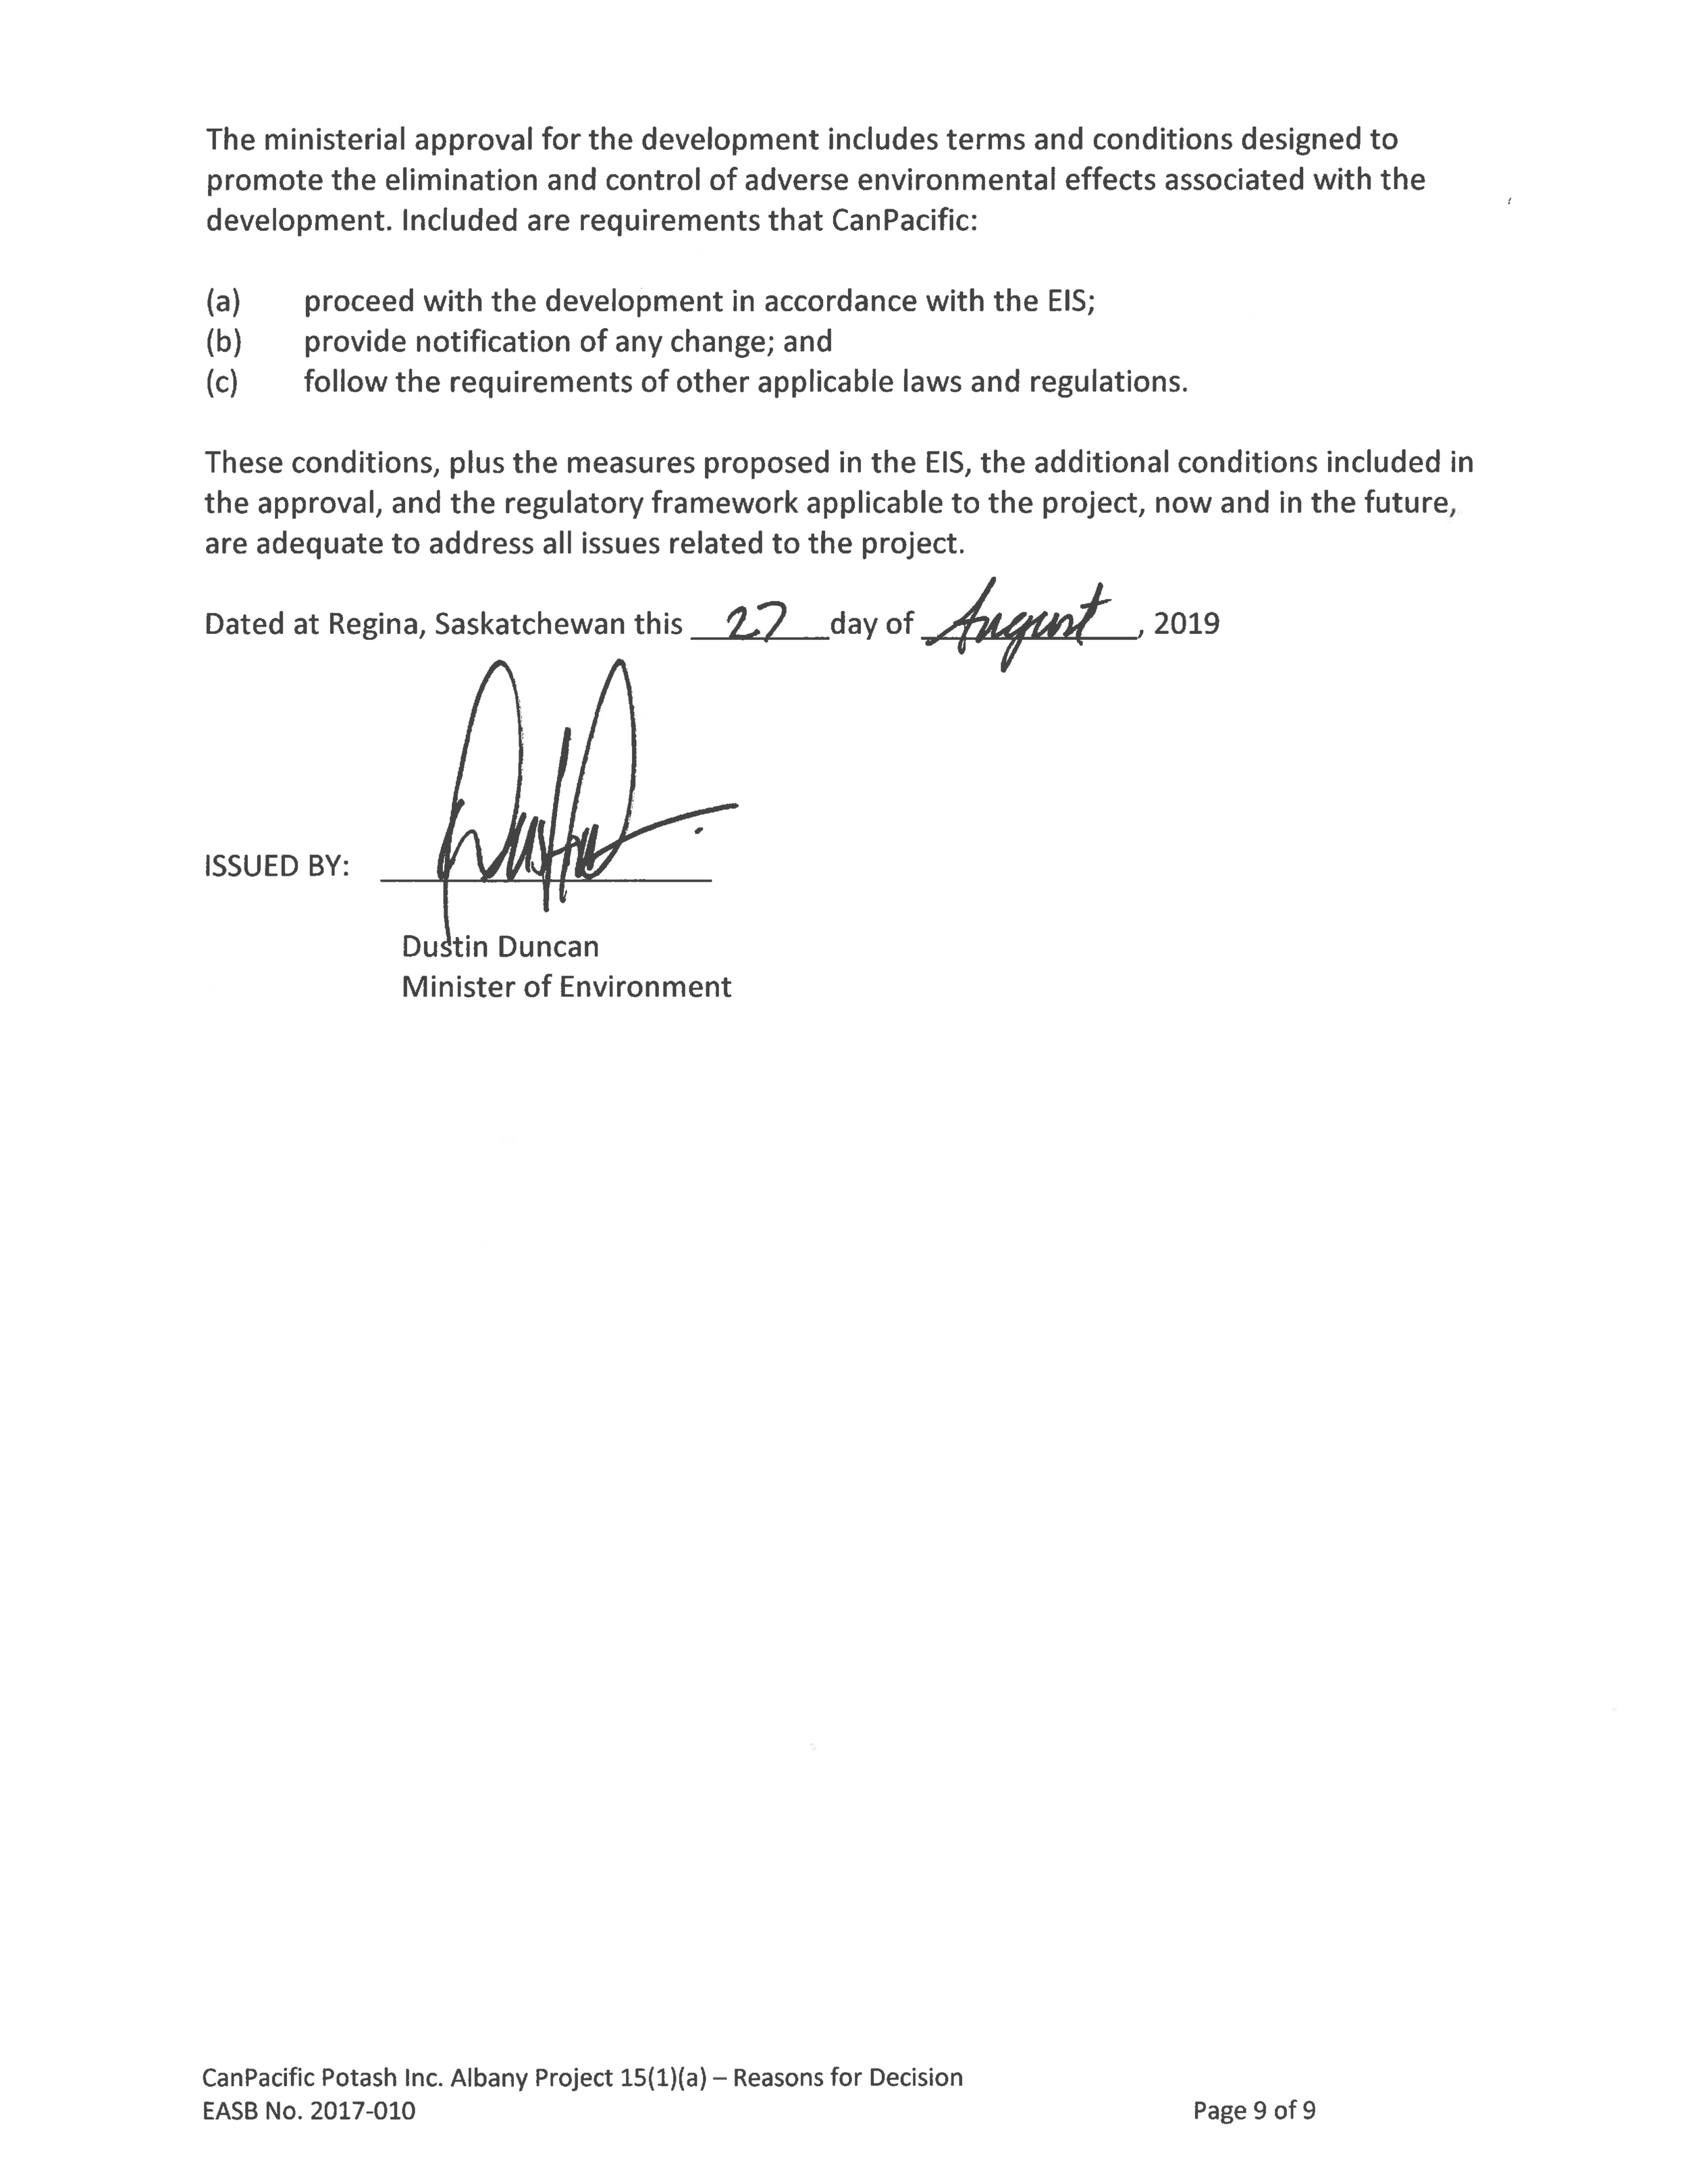 2017-010 Albany Project Decision_Signed (2)_Page_11.png